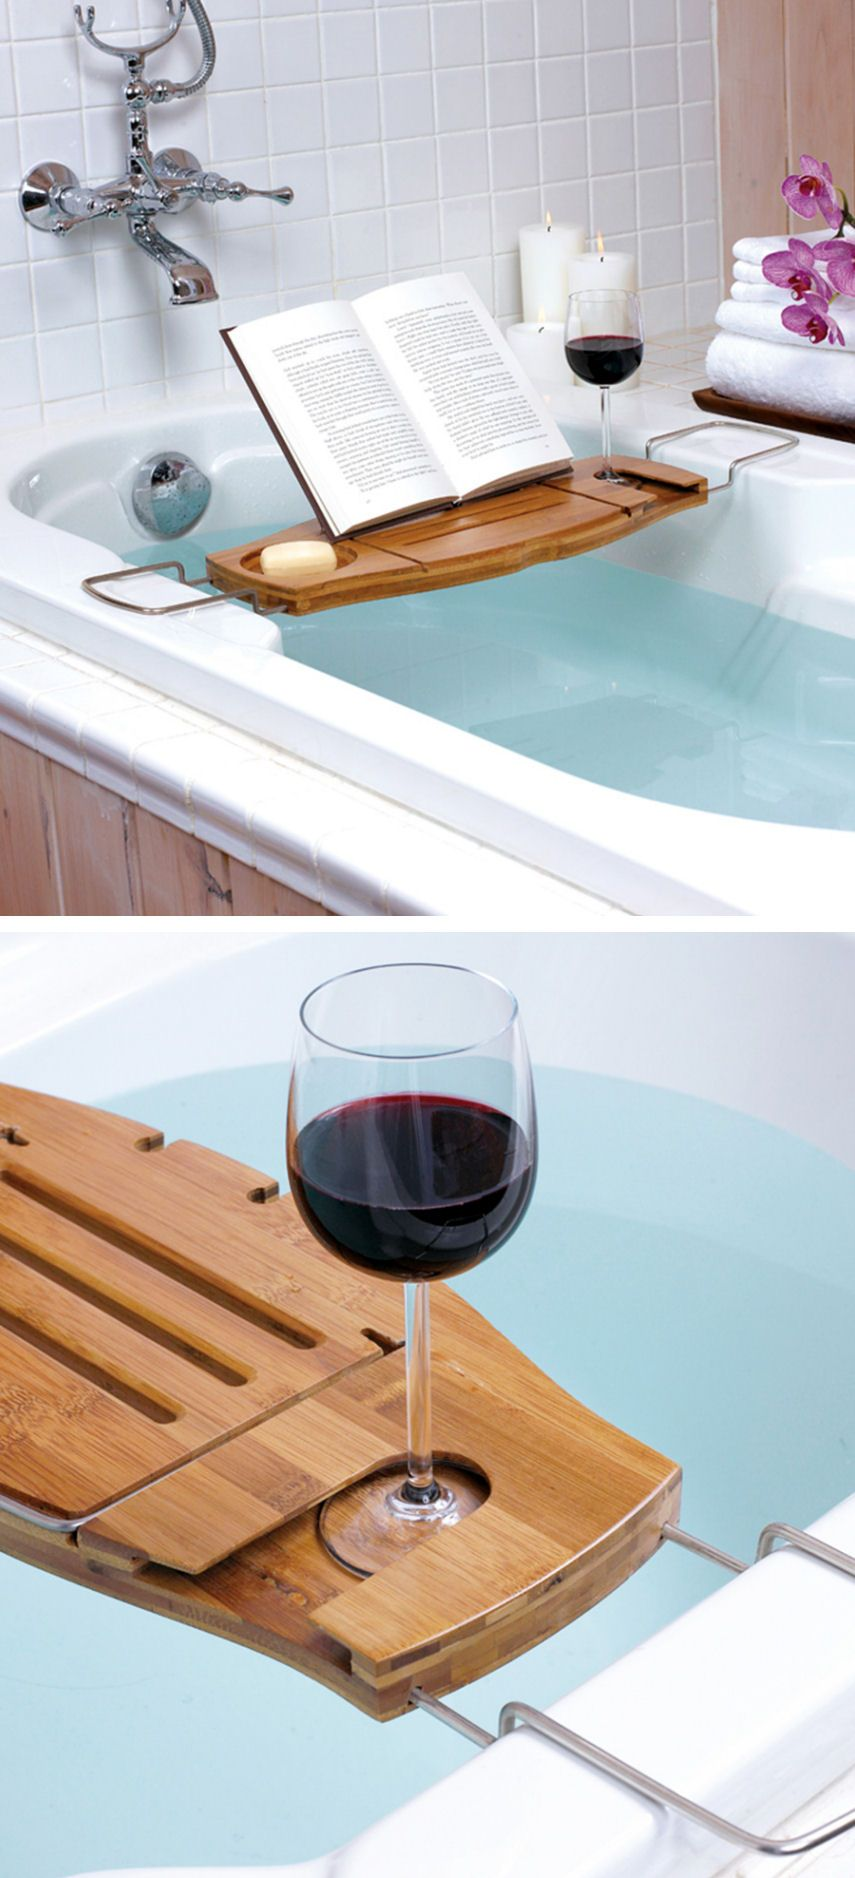 Bath Caddy with Wine Glass Holder // L.O.V.E. | Home Sweet Home ...